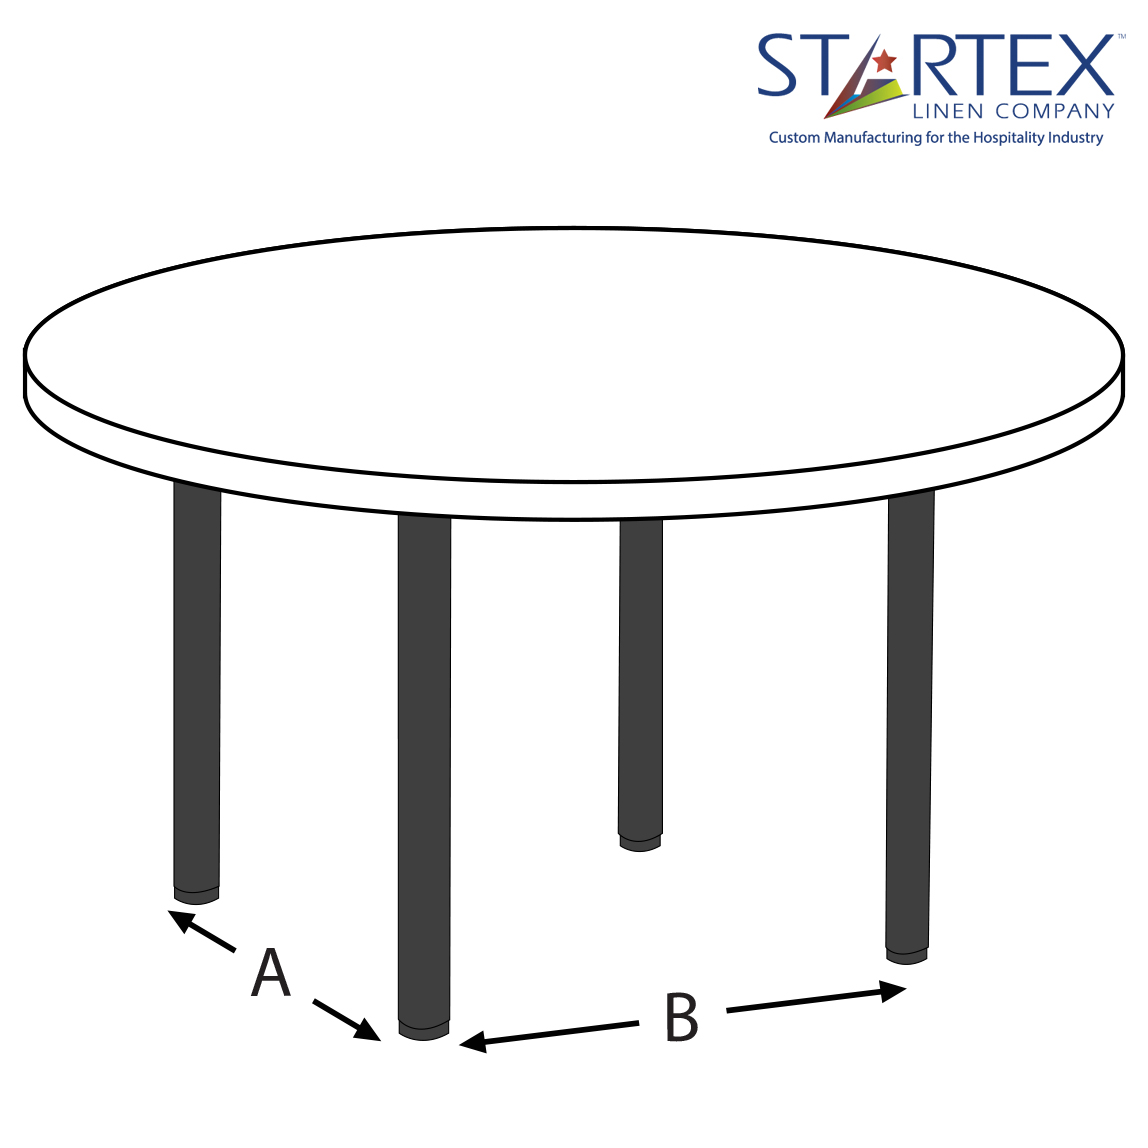 Cocktail tables size startex linen company for Cocktail tables measurements